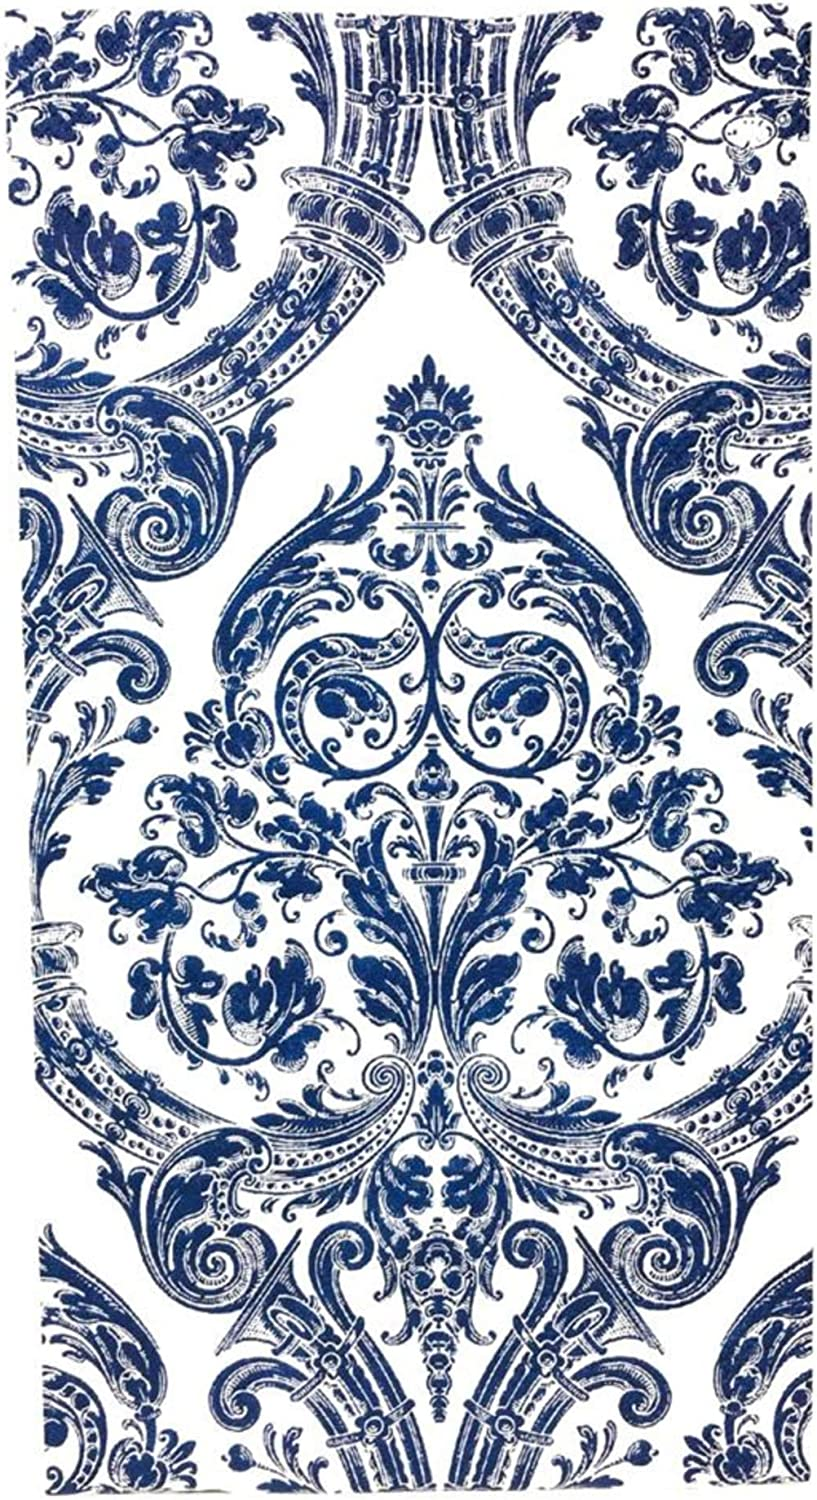 Ideal Home Range 32 Count 3-Ply Paper Guest Towel Dinner Buffet Napkins, Damask White Blue